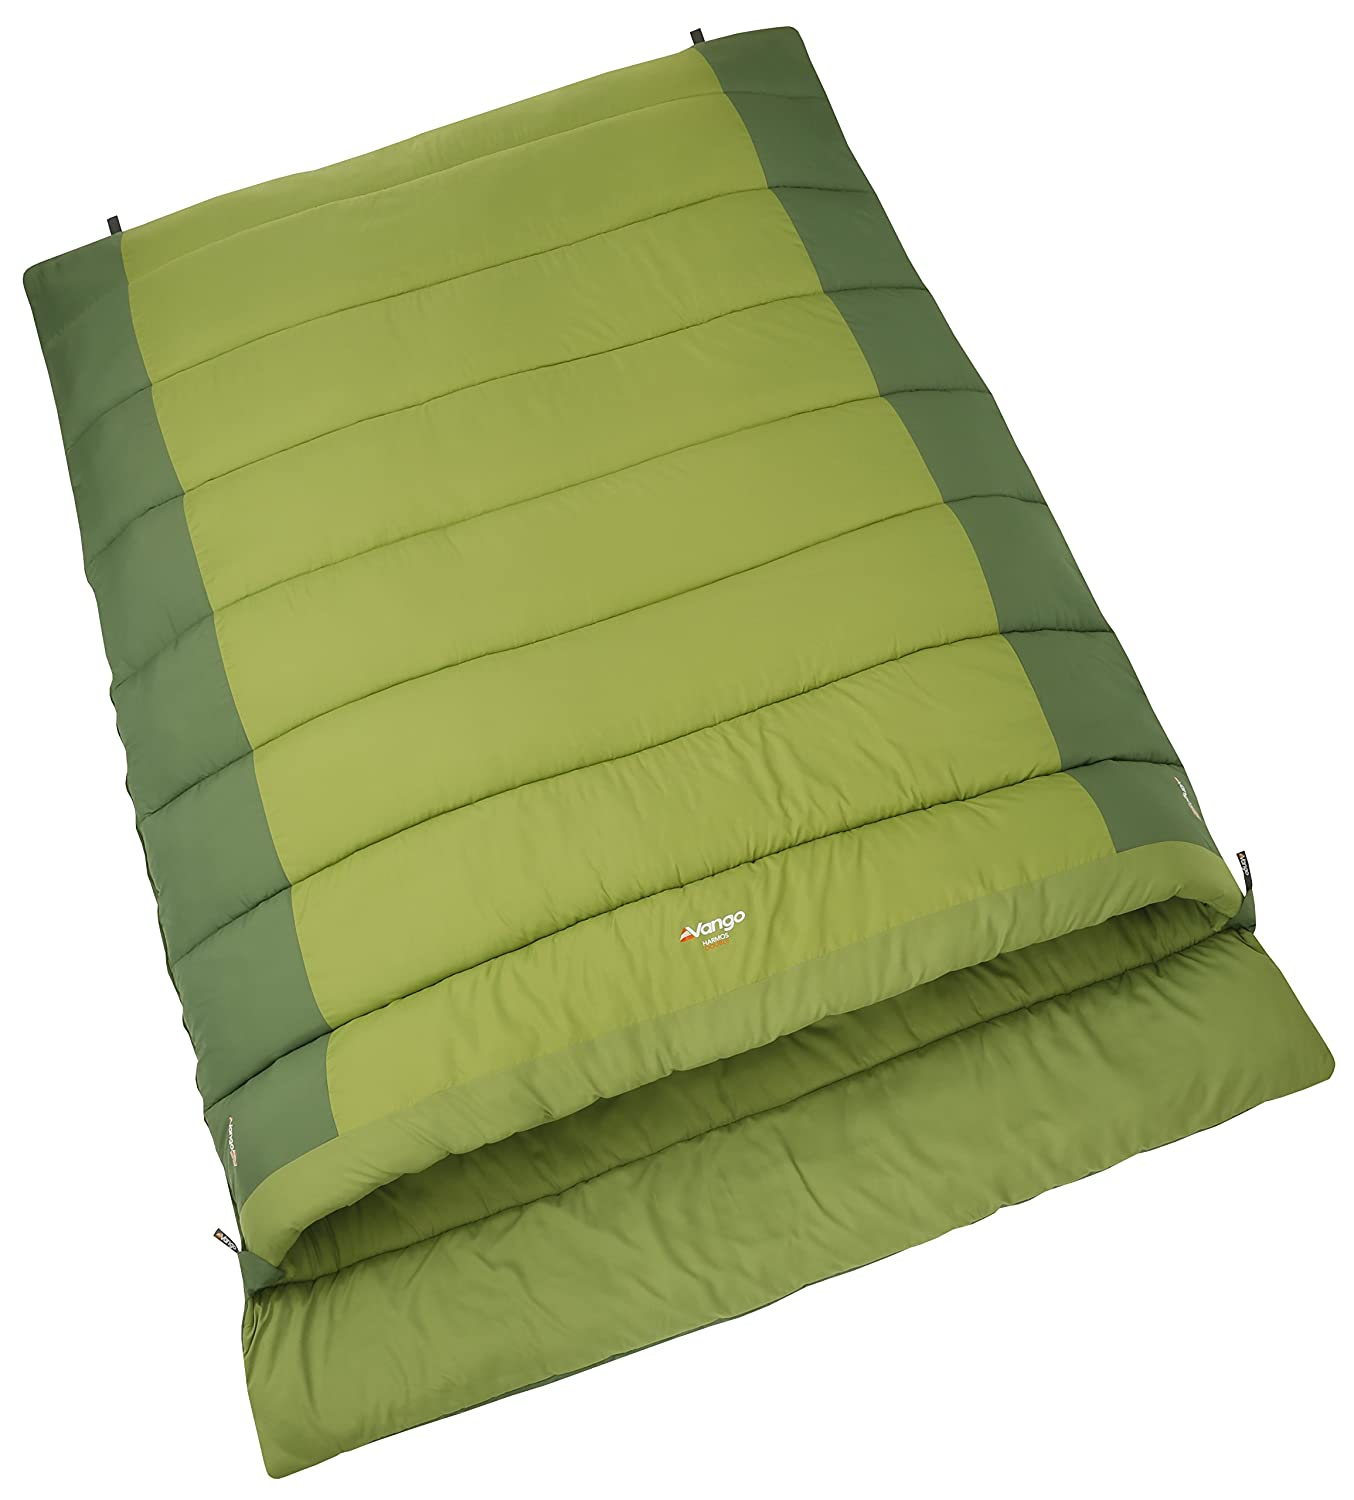 promo code fc0ce a7642 Vango Harmos Outdoor Double Sleeping Bag available in Treetops - Size 58 x  31 cm